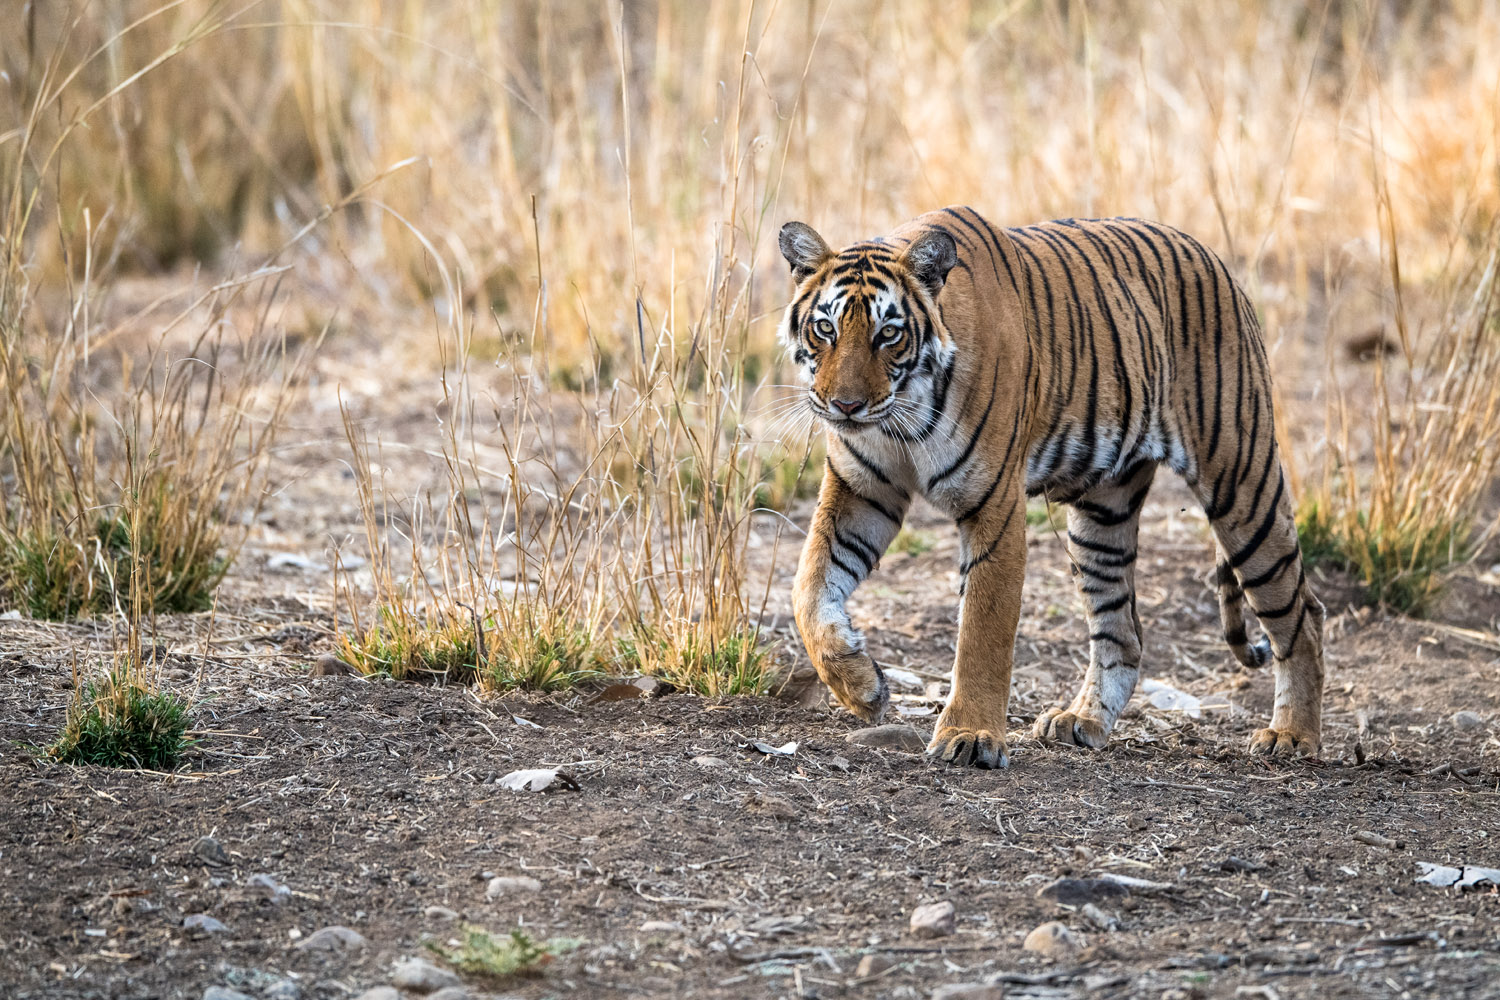 Bengal tigress on the move, Ranthambhore National Park, Rajasthan, India